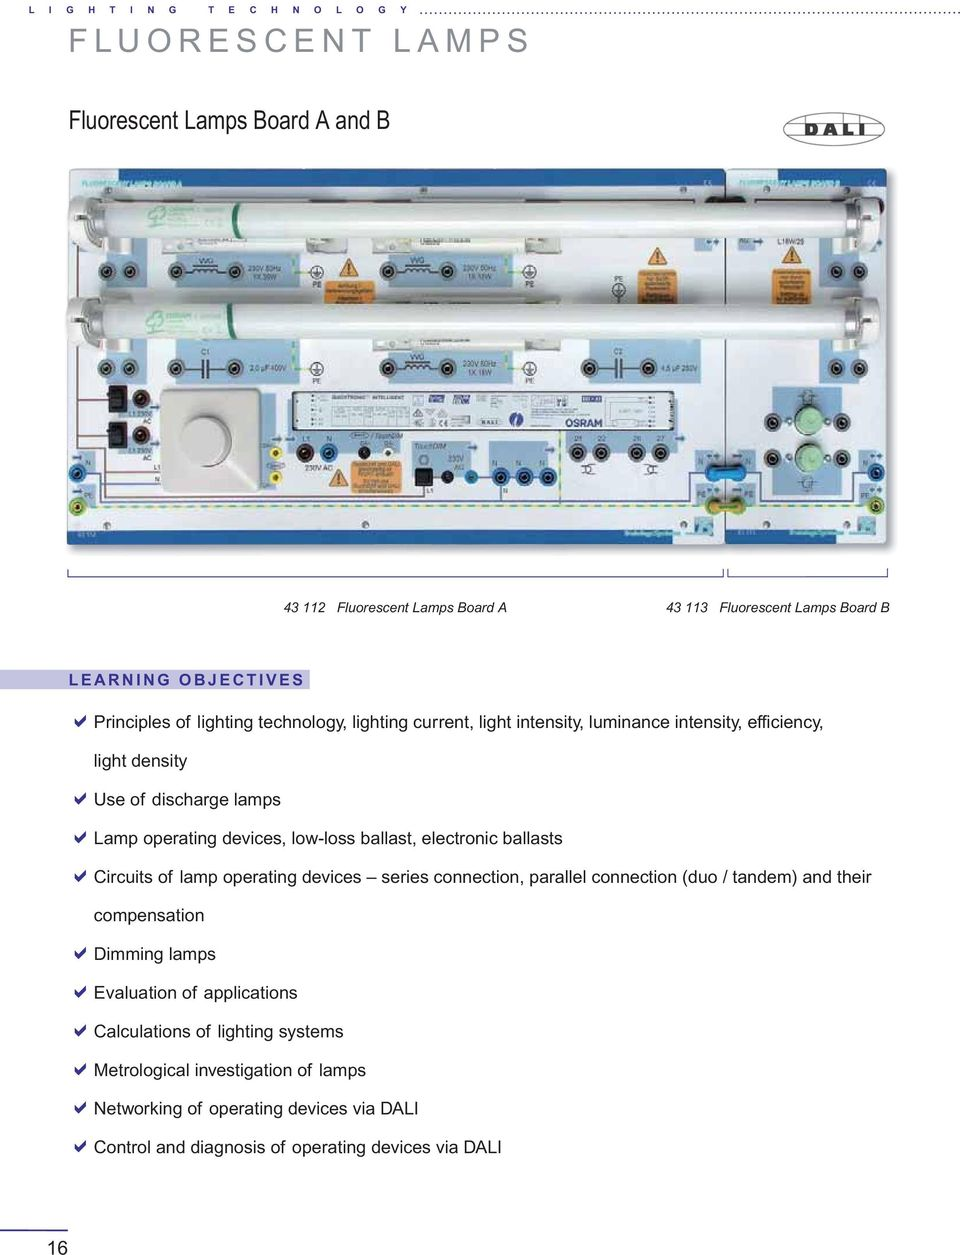 Elabotrainingssysteme Aus Und Weiterbildung Gmbh Installation Lamp Circuit Boardenergy Saving Boardled Board Low Loss Ballast Electronic Ballasts Circuits Of Operating Devices Series Connection Parallel